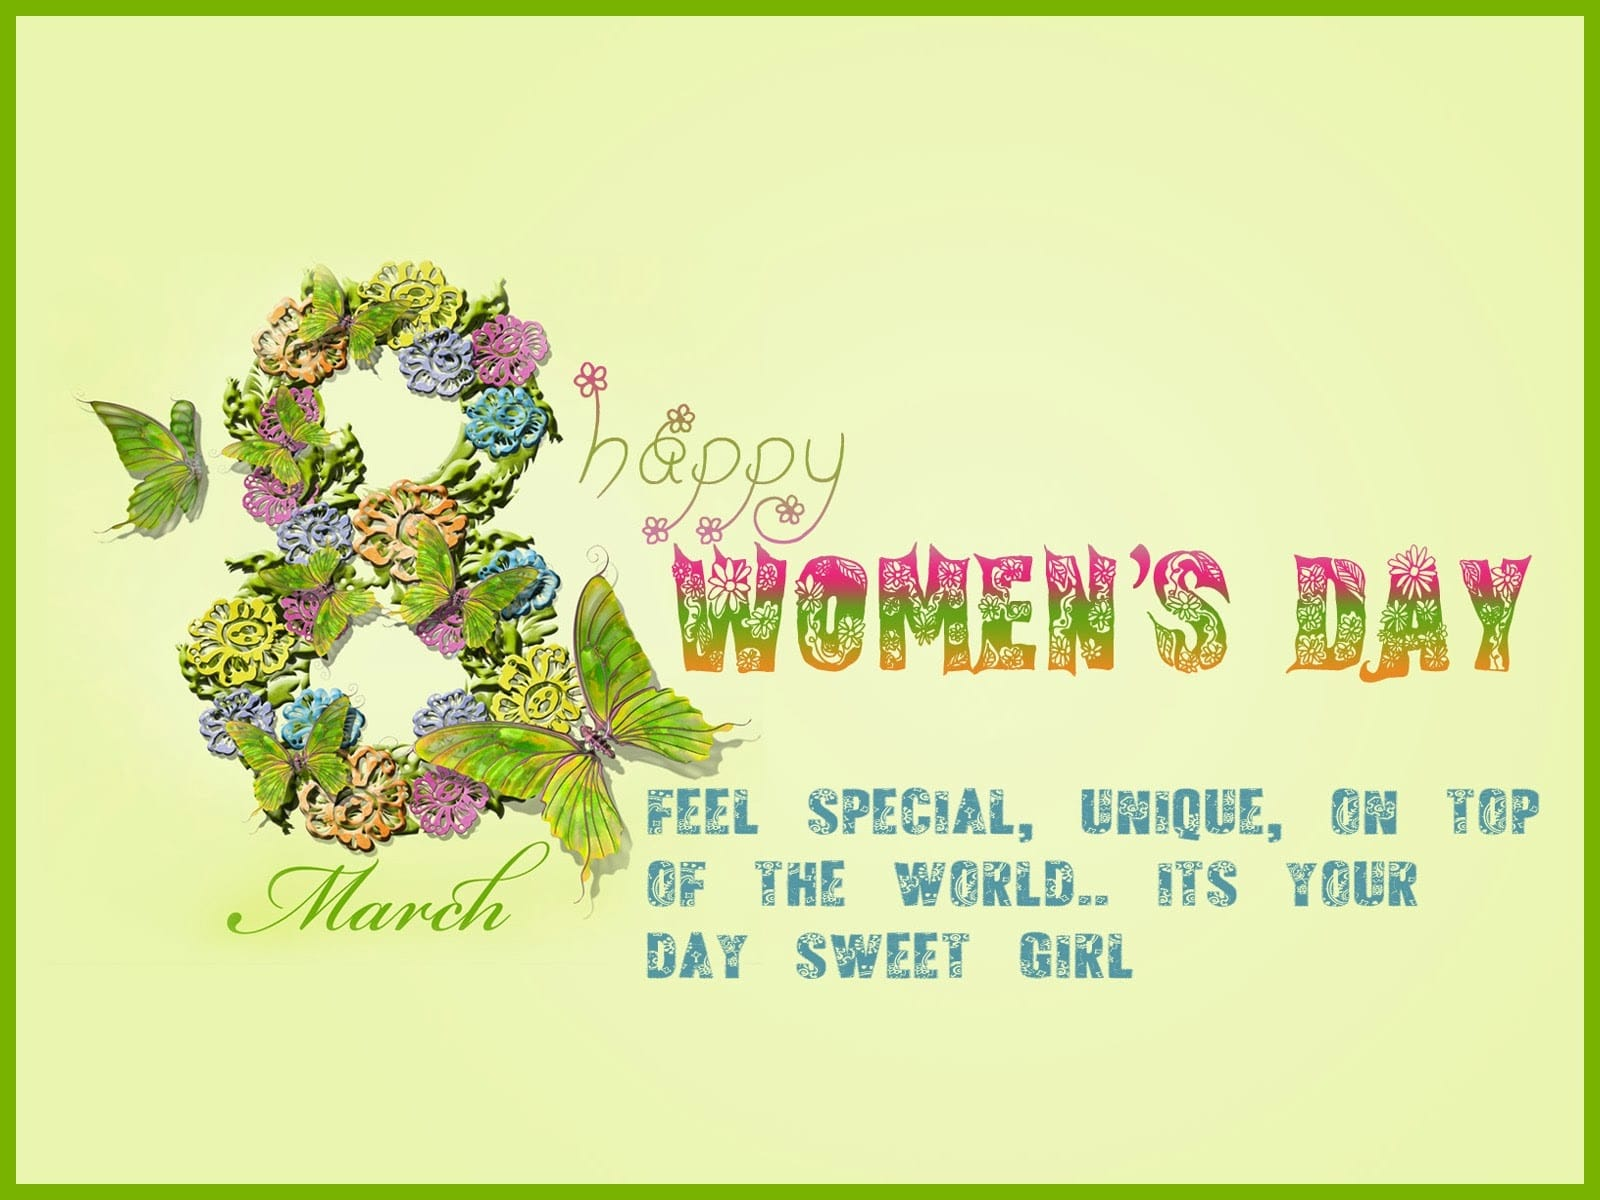 Happy 8th March Women's Day Quotes